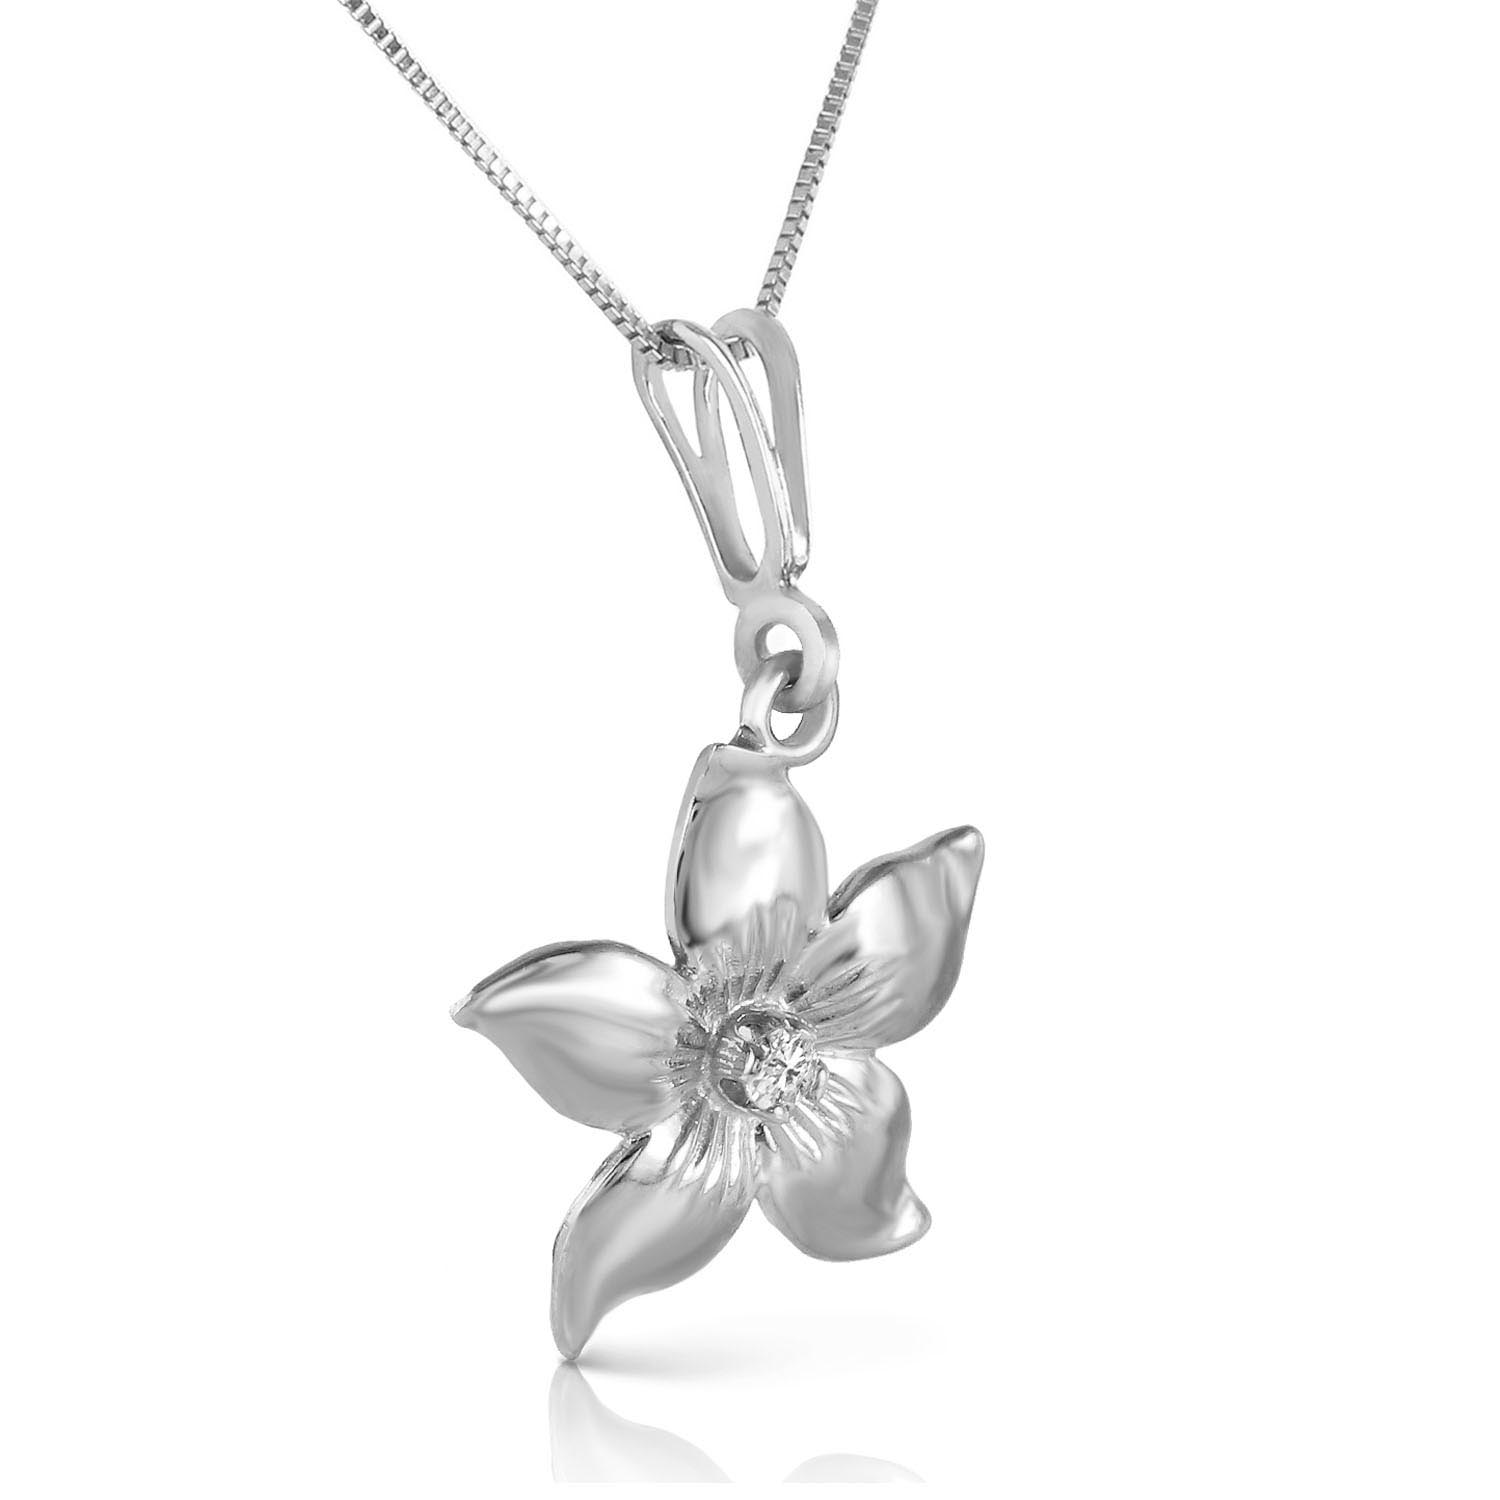 Diamond Flower Petal Pendant Necklace in 9ct White Gold